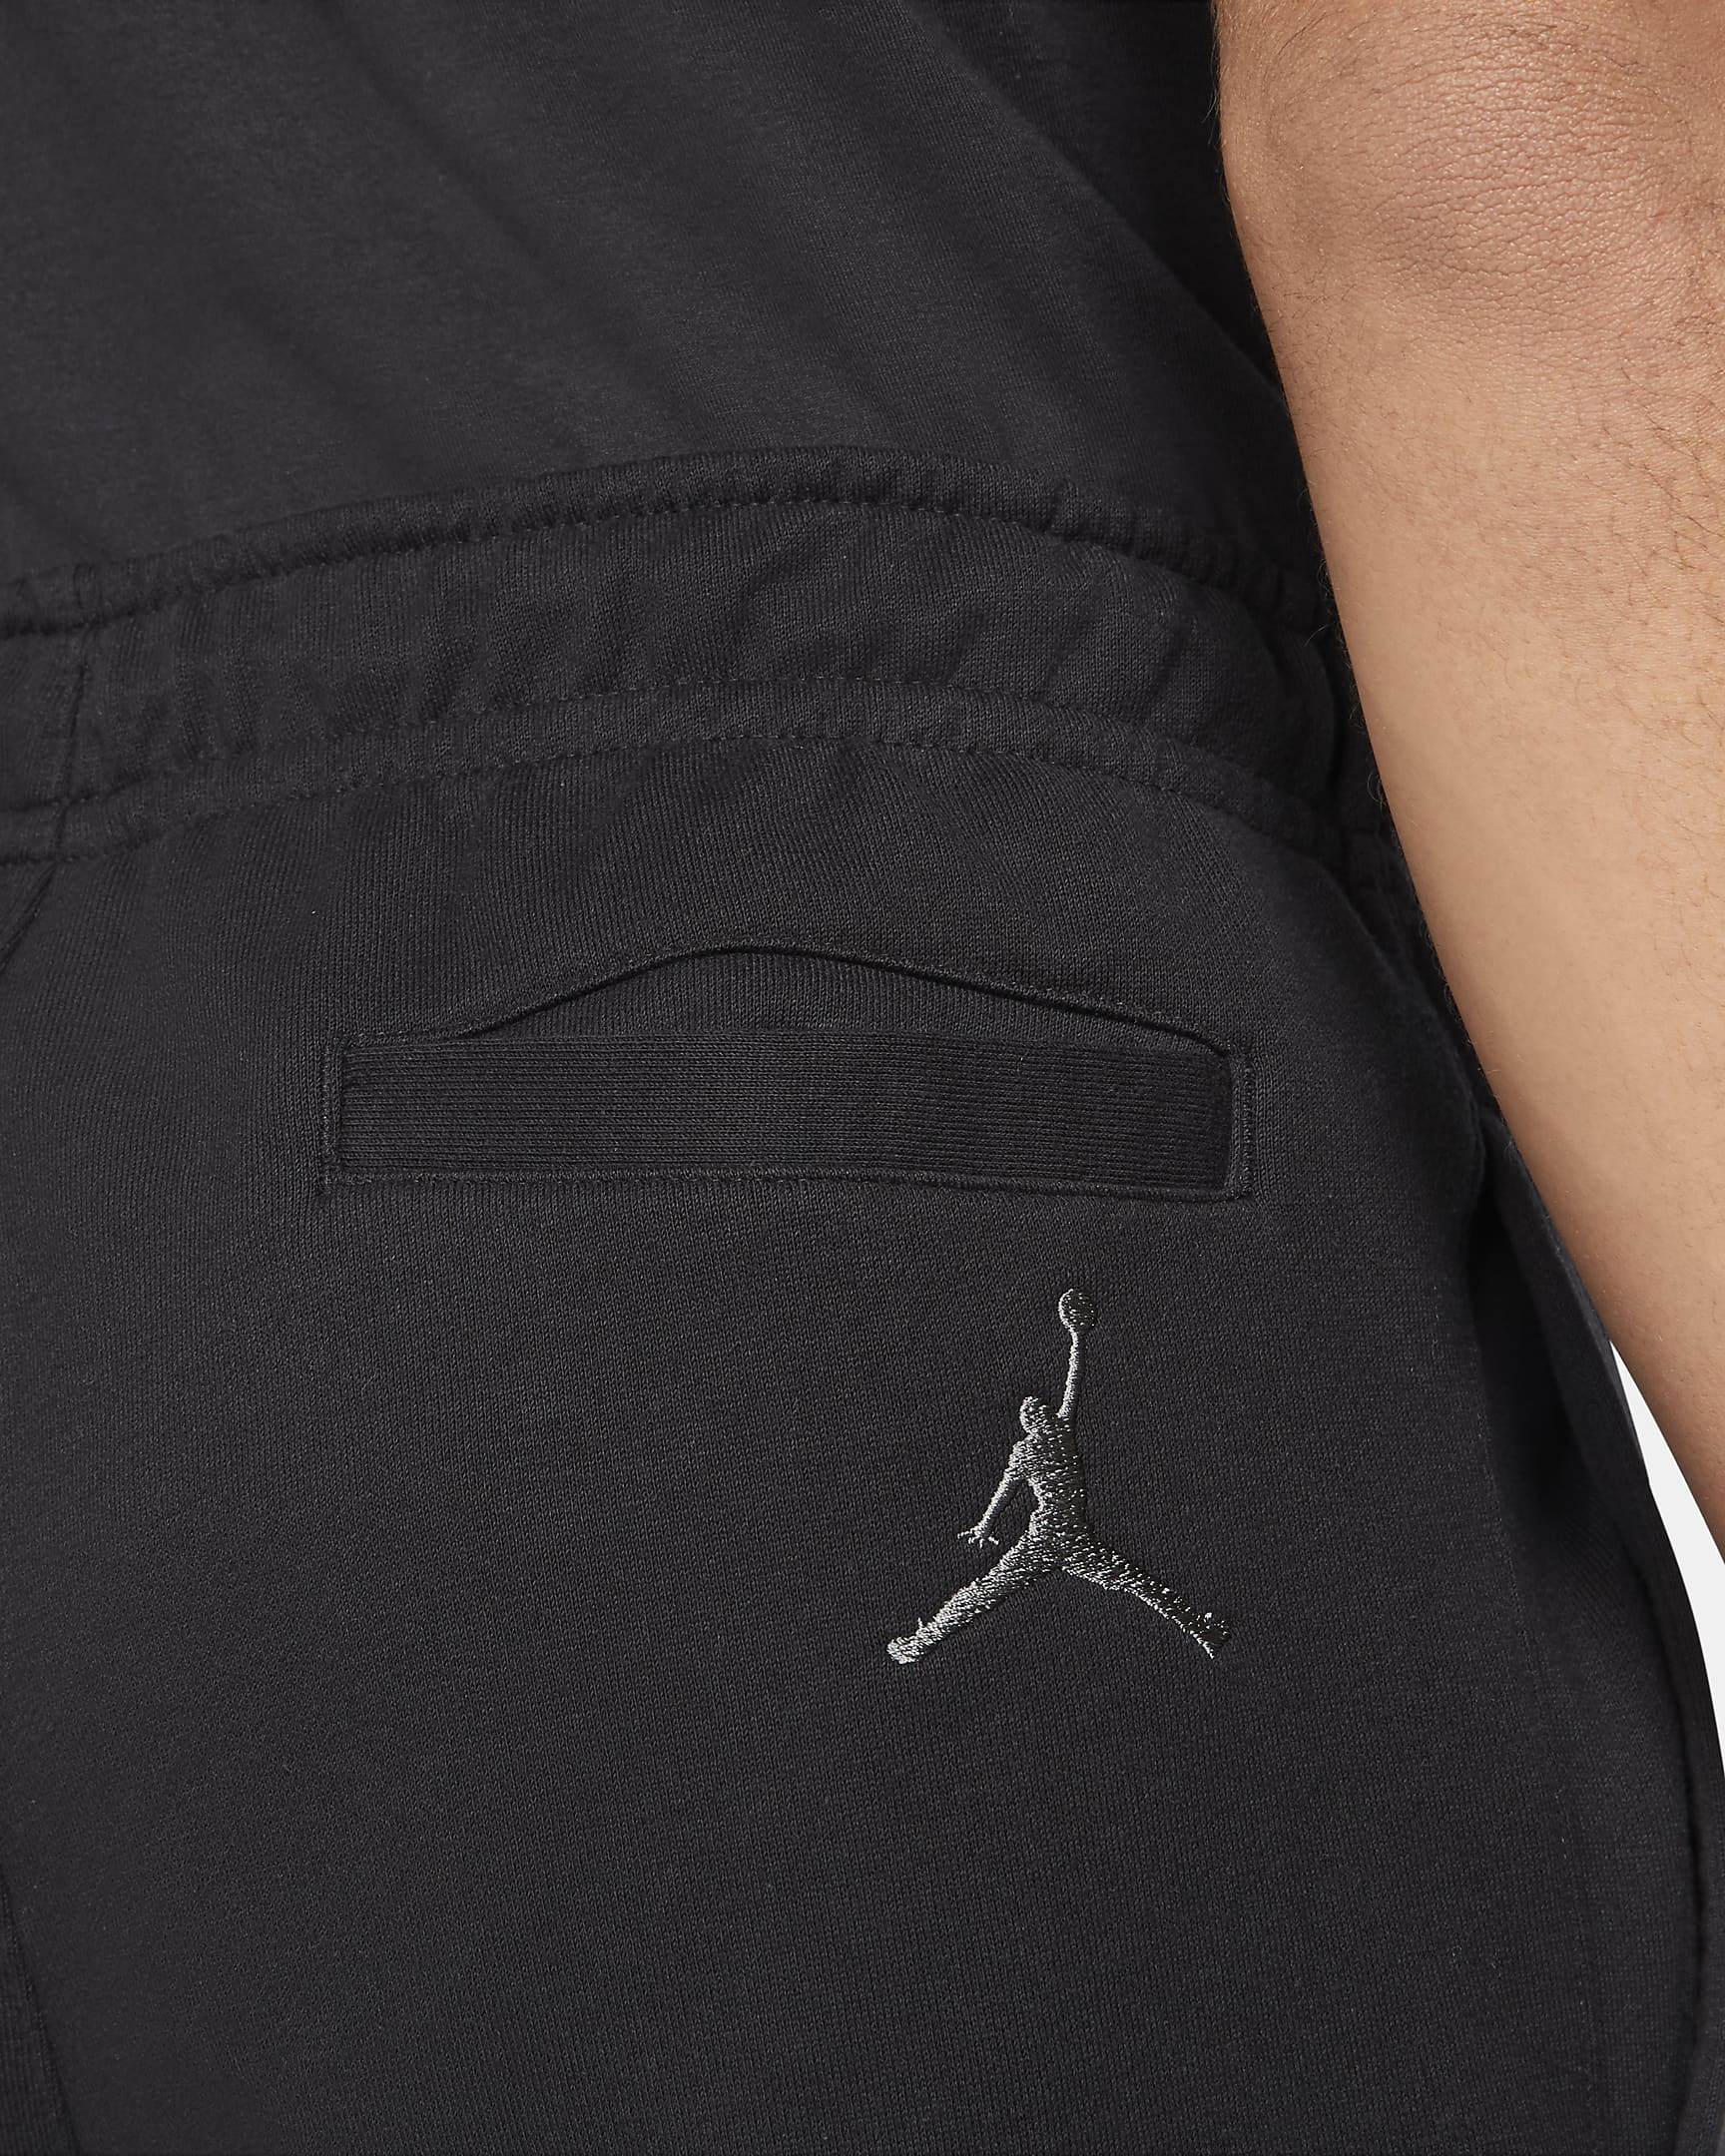 jordan-jumpman-classics-mens-fleece-pants-8GqjNg-11